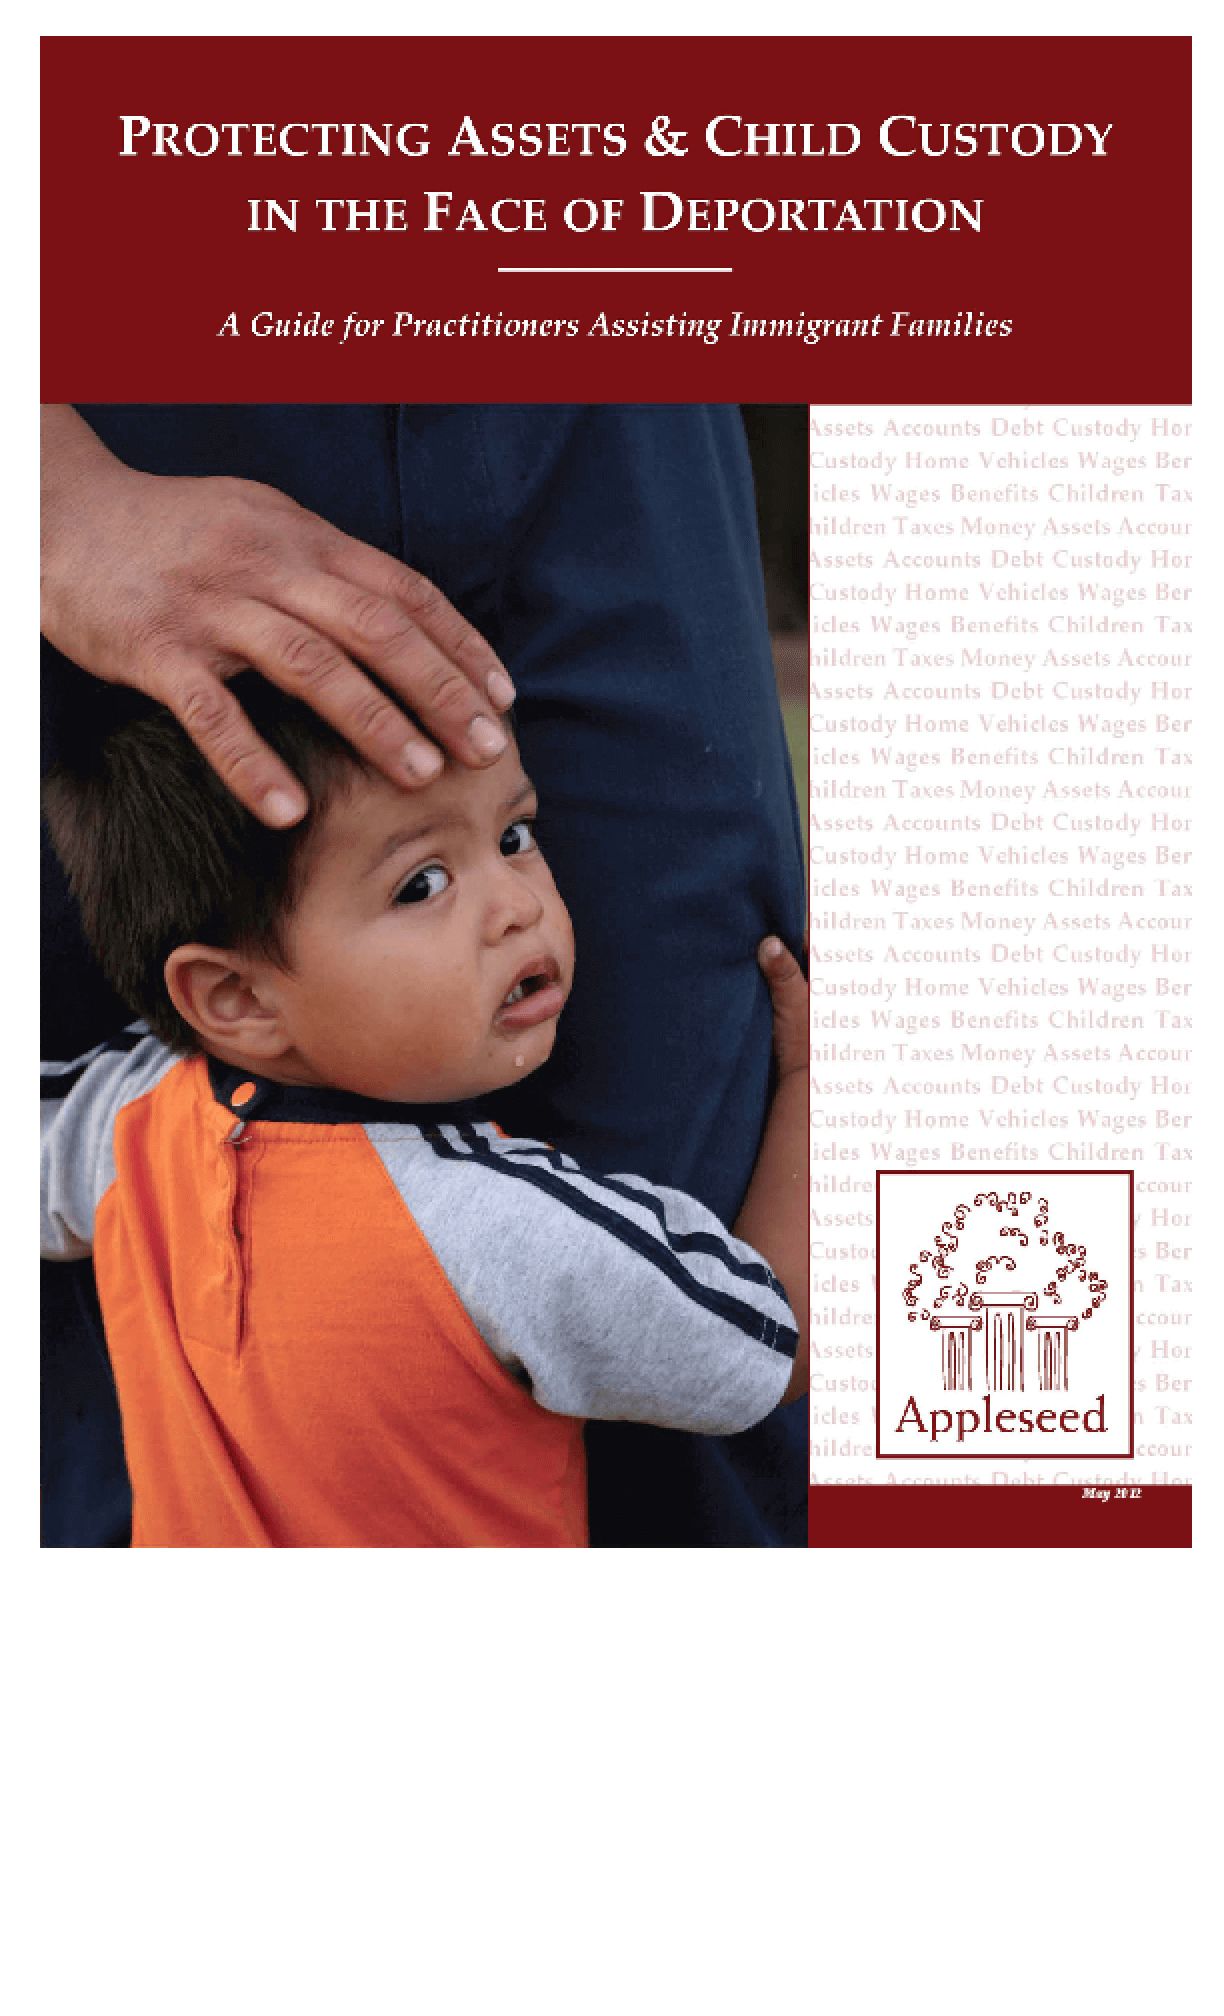 Protecting Assets & Child Custody in the Face of Deportation: A Guide for Practitioners Assisting Immigrant Families